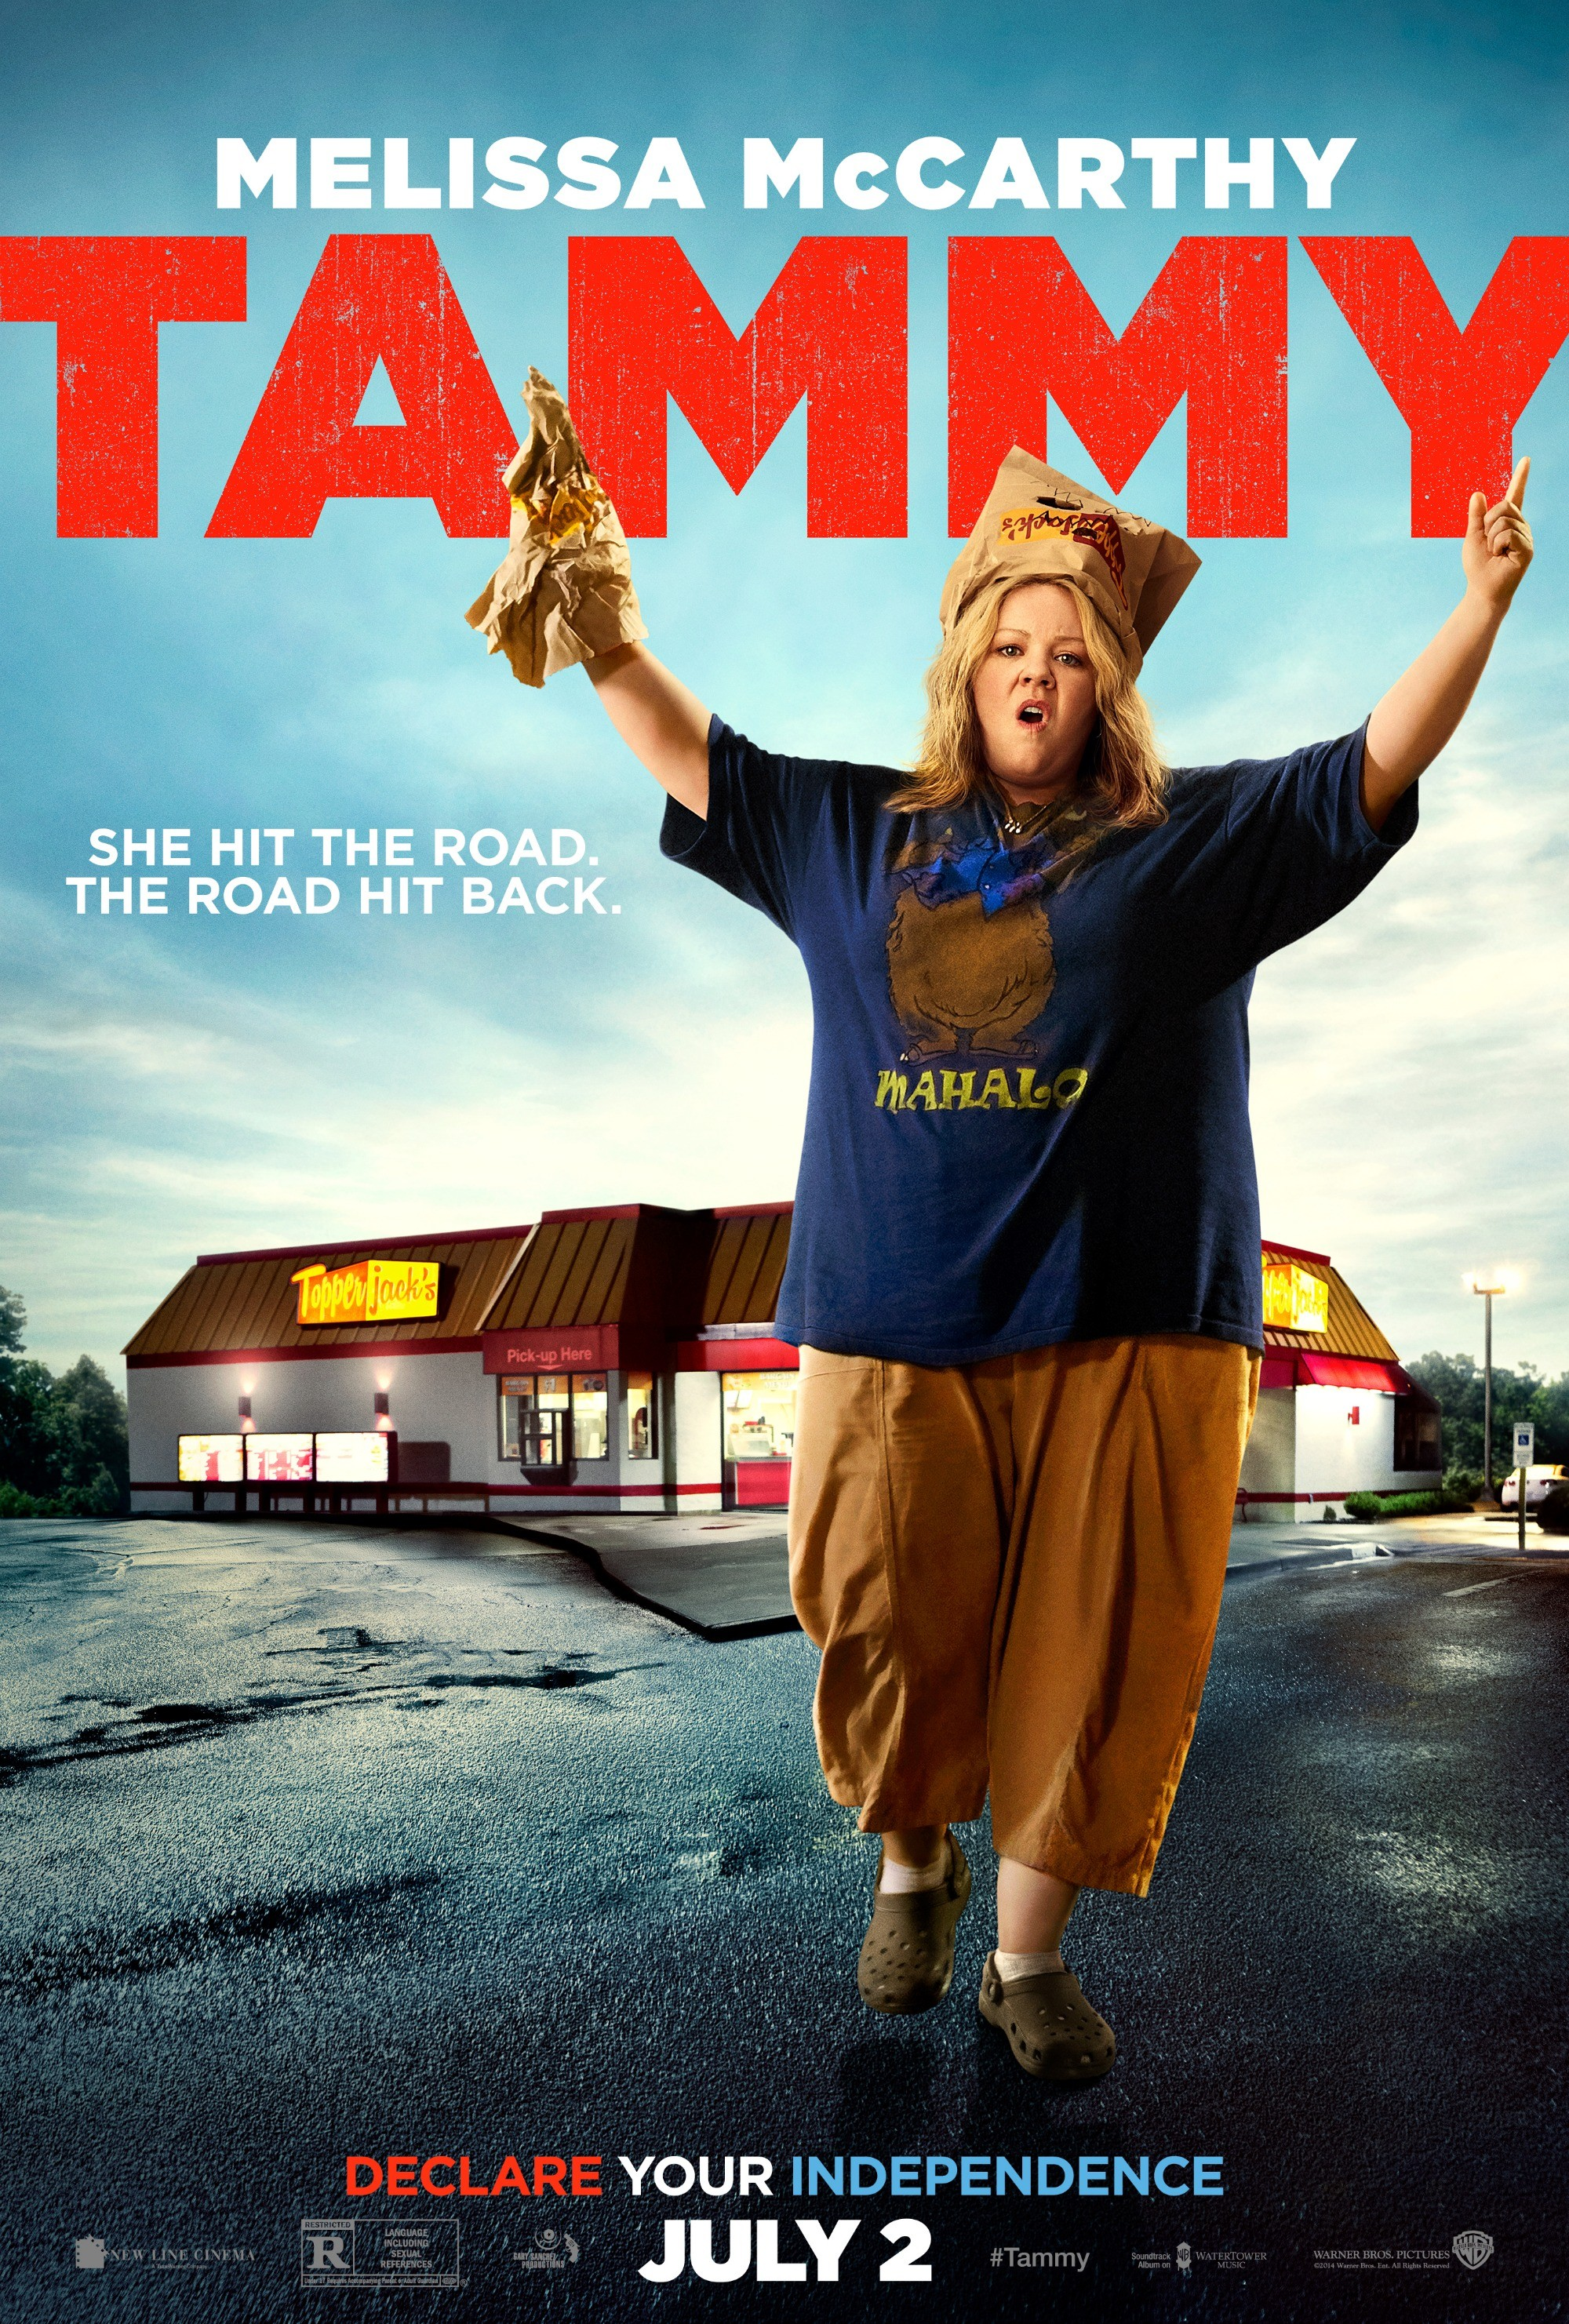 Tammy-Official Poster Banner PROMO XXLG-30MAIO2014